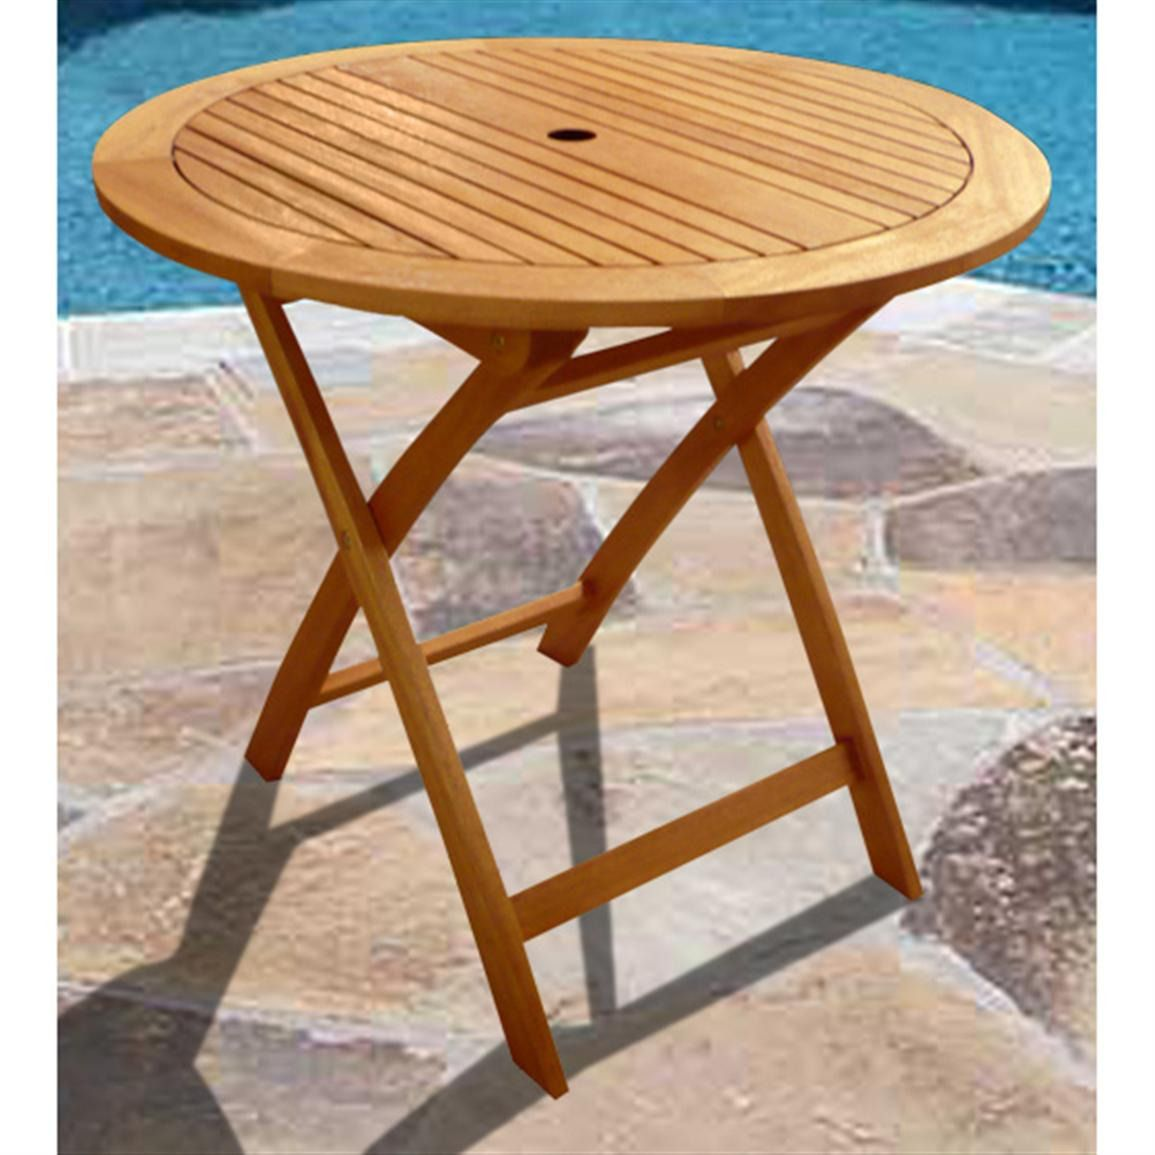 100+ Round Folding Patio Table - Cool Storage Furniture Check More At Http://livelylighting.c… | Wooden Garden Table, Outdoor Folding Table, Garden Table And Chairs